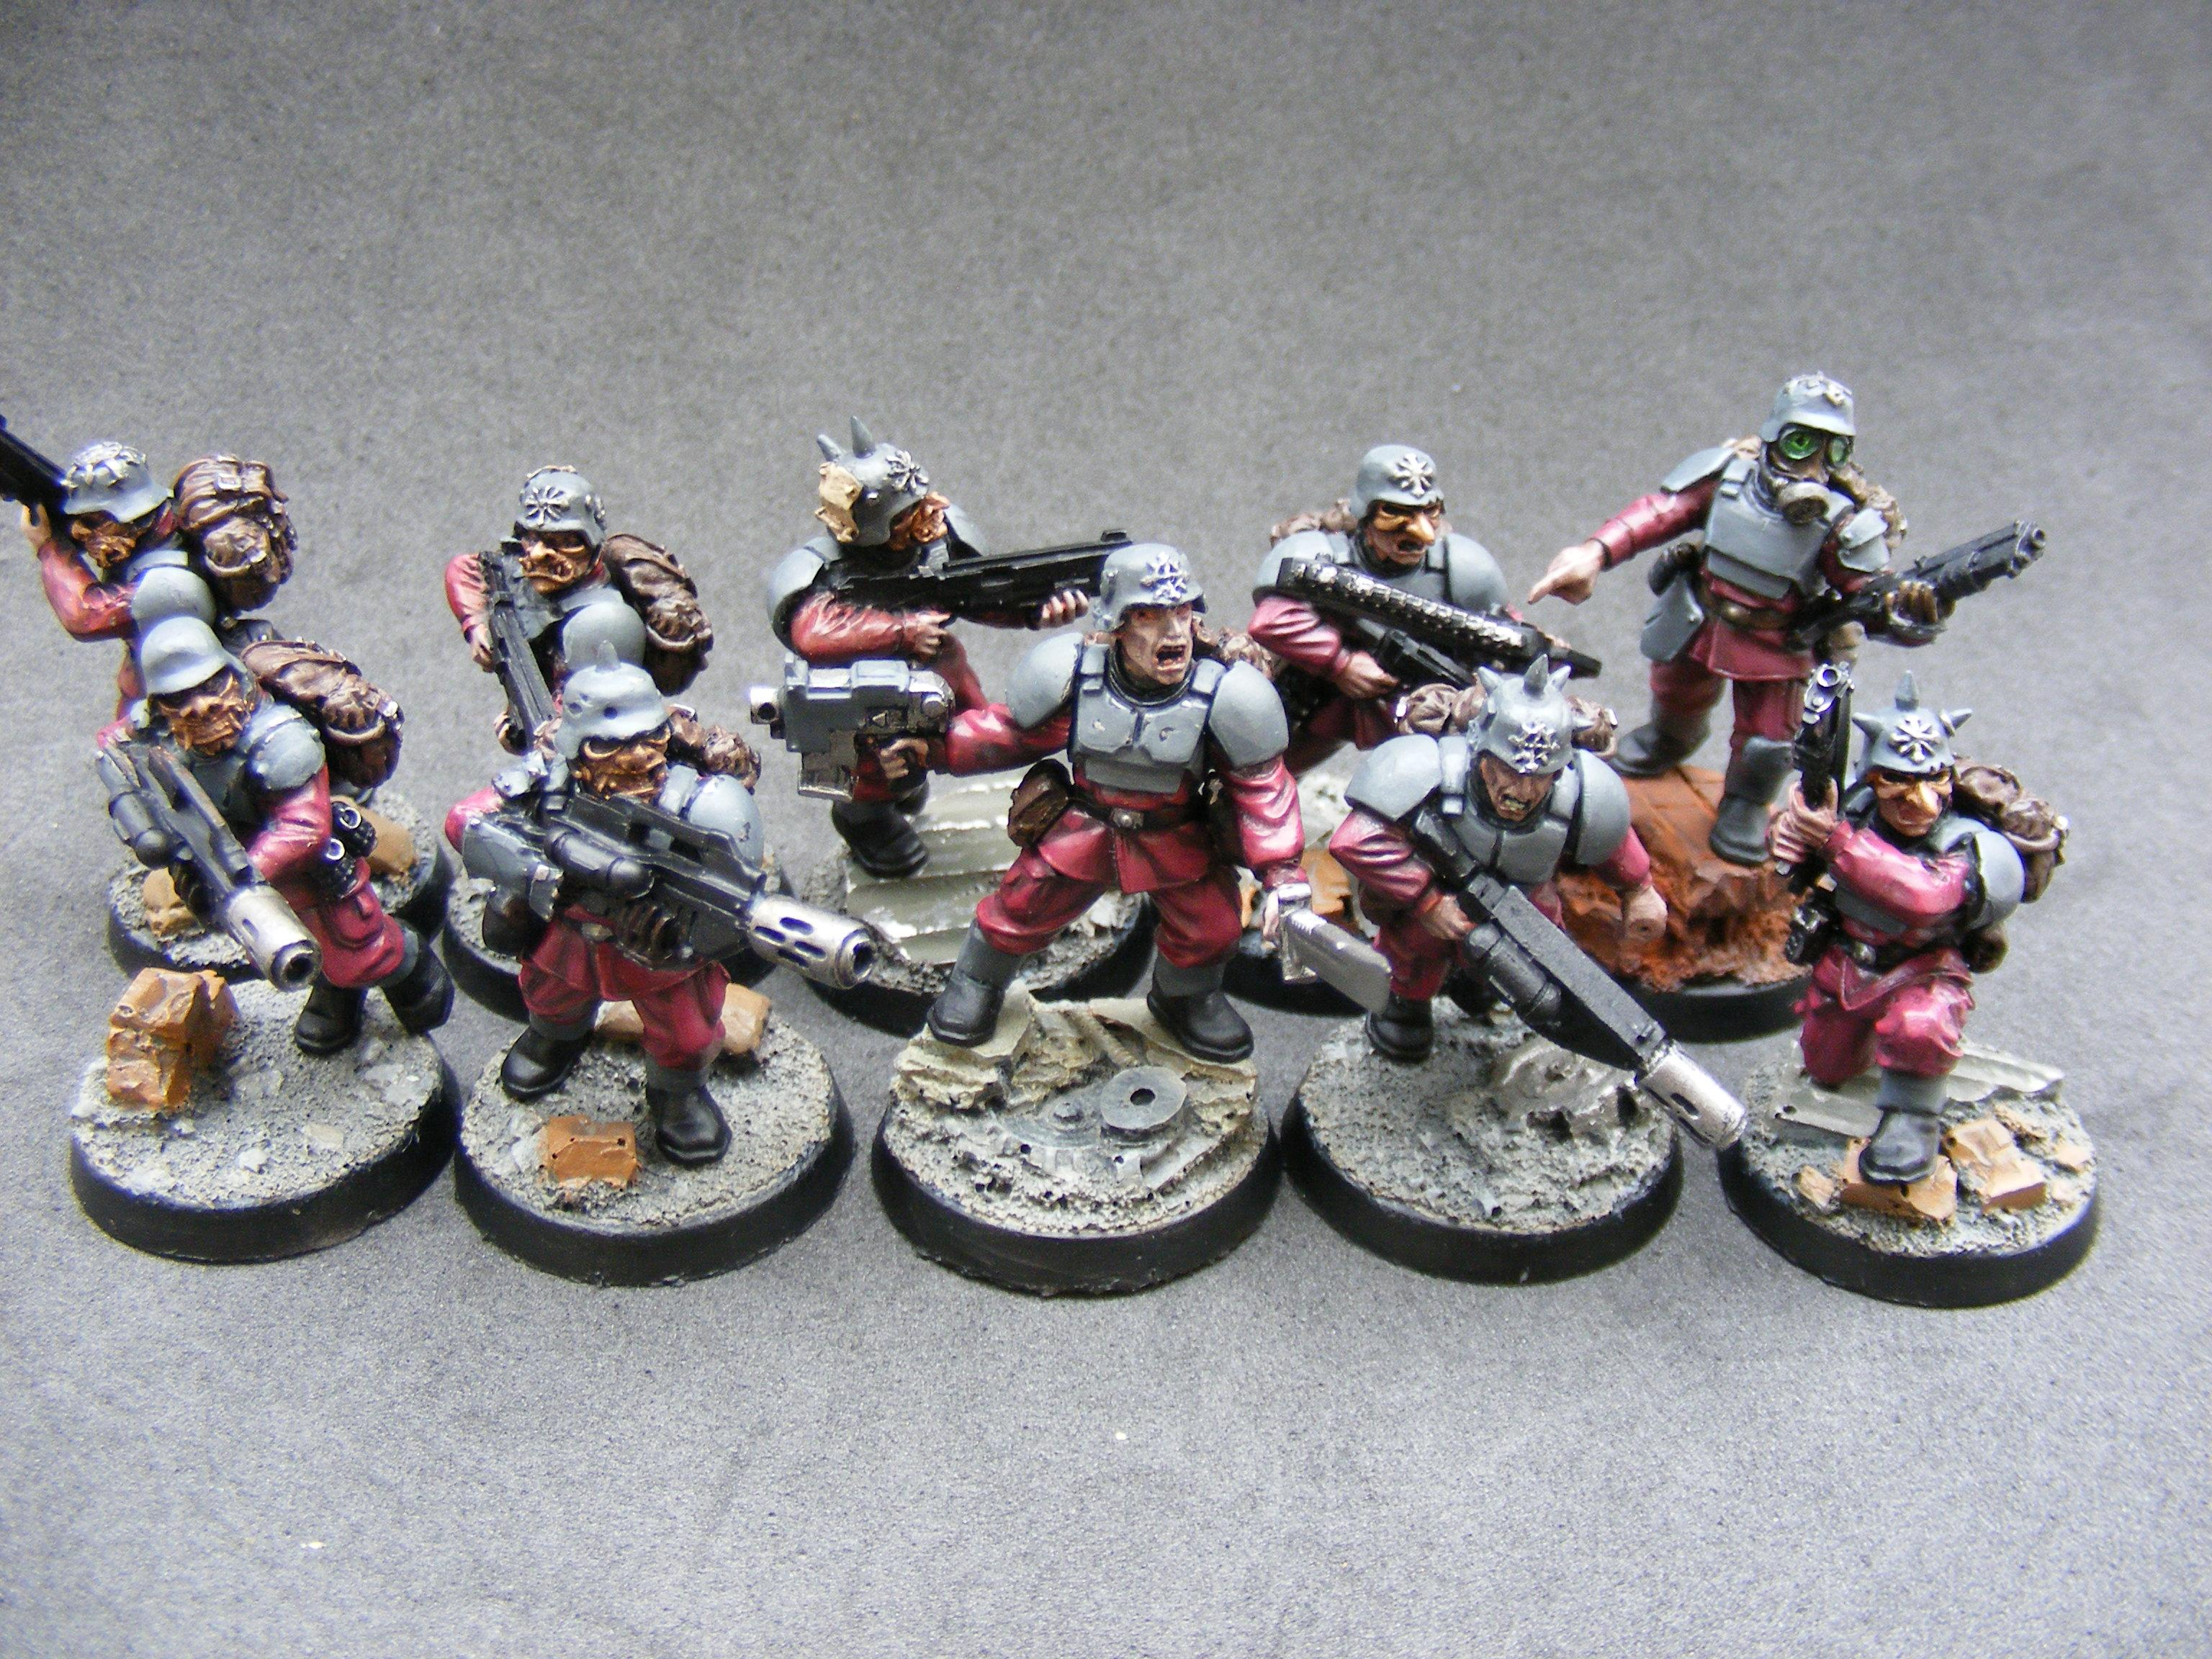 Chaos, Cultists, Imperial Guard, Lost And The Damned, Renegades, Traitor, Warhammer 40,000